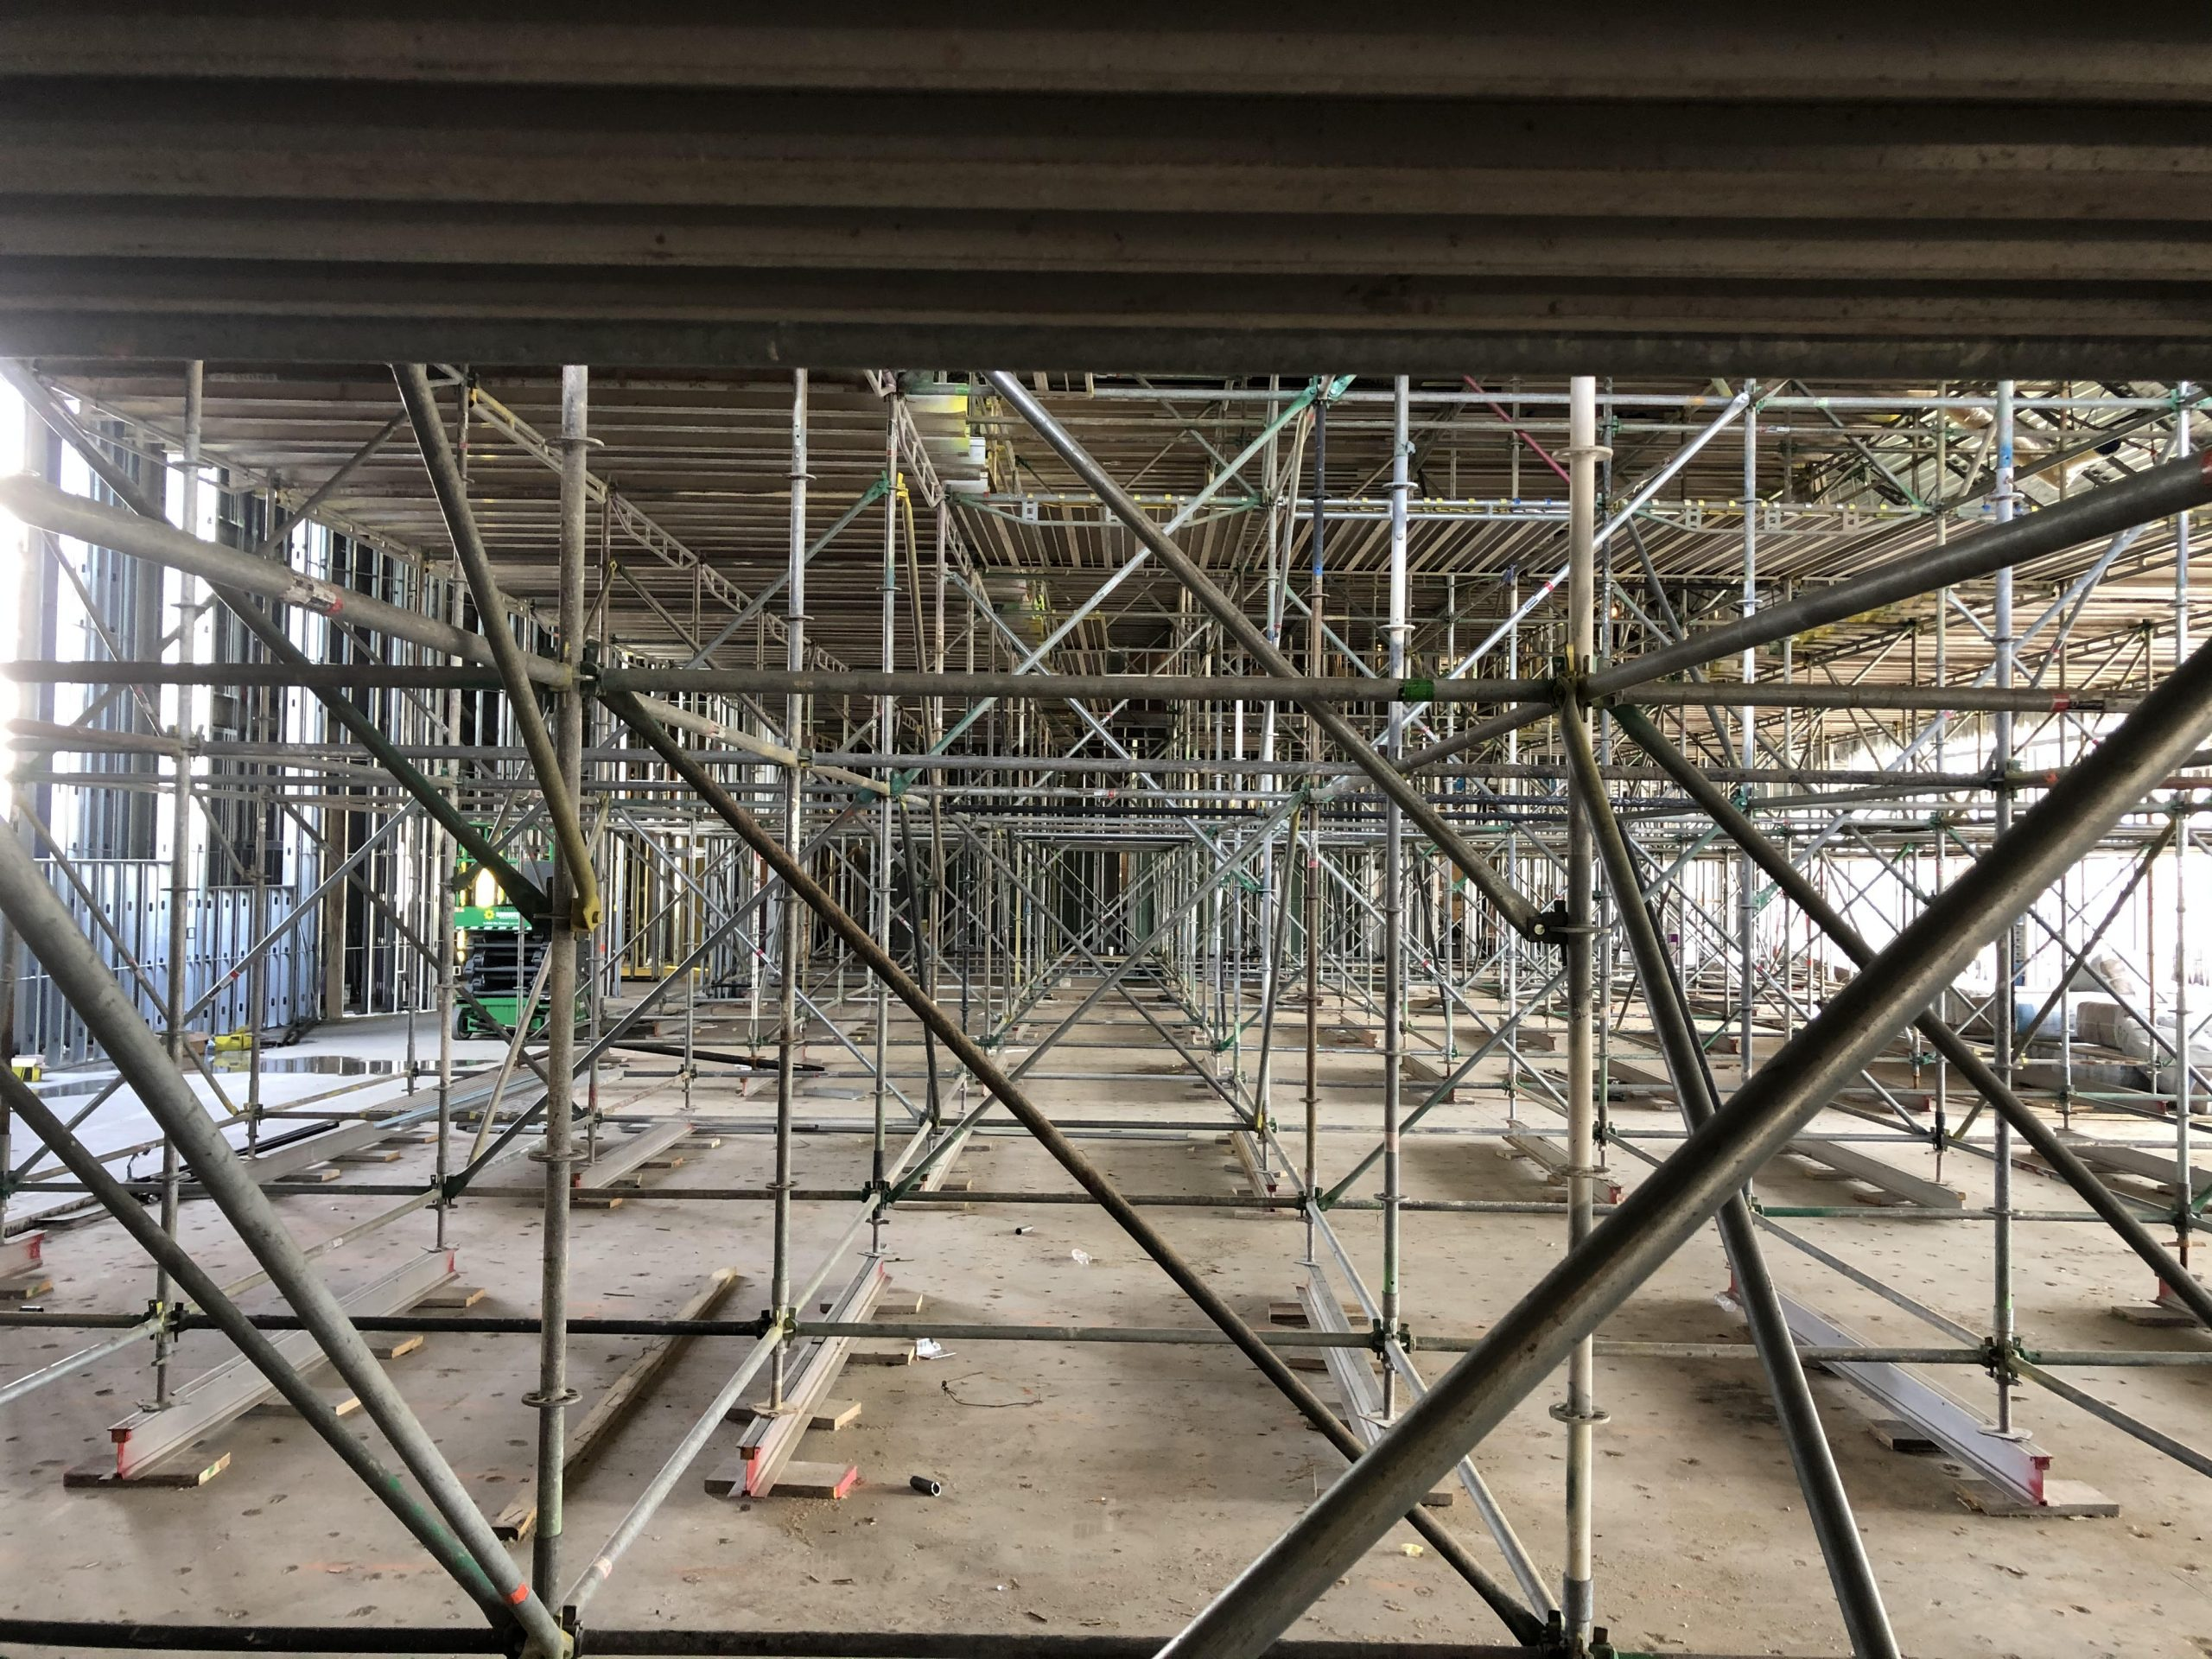 The inside of the Ministry Center filled with scaffolding